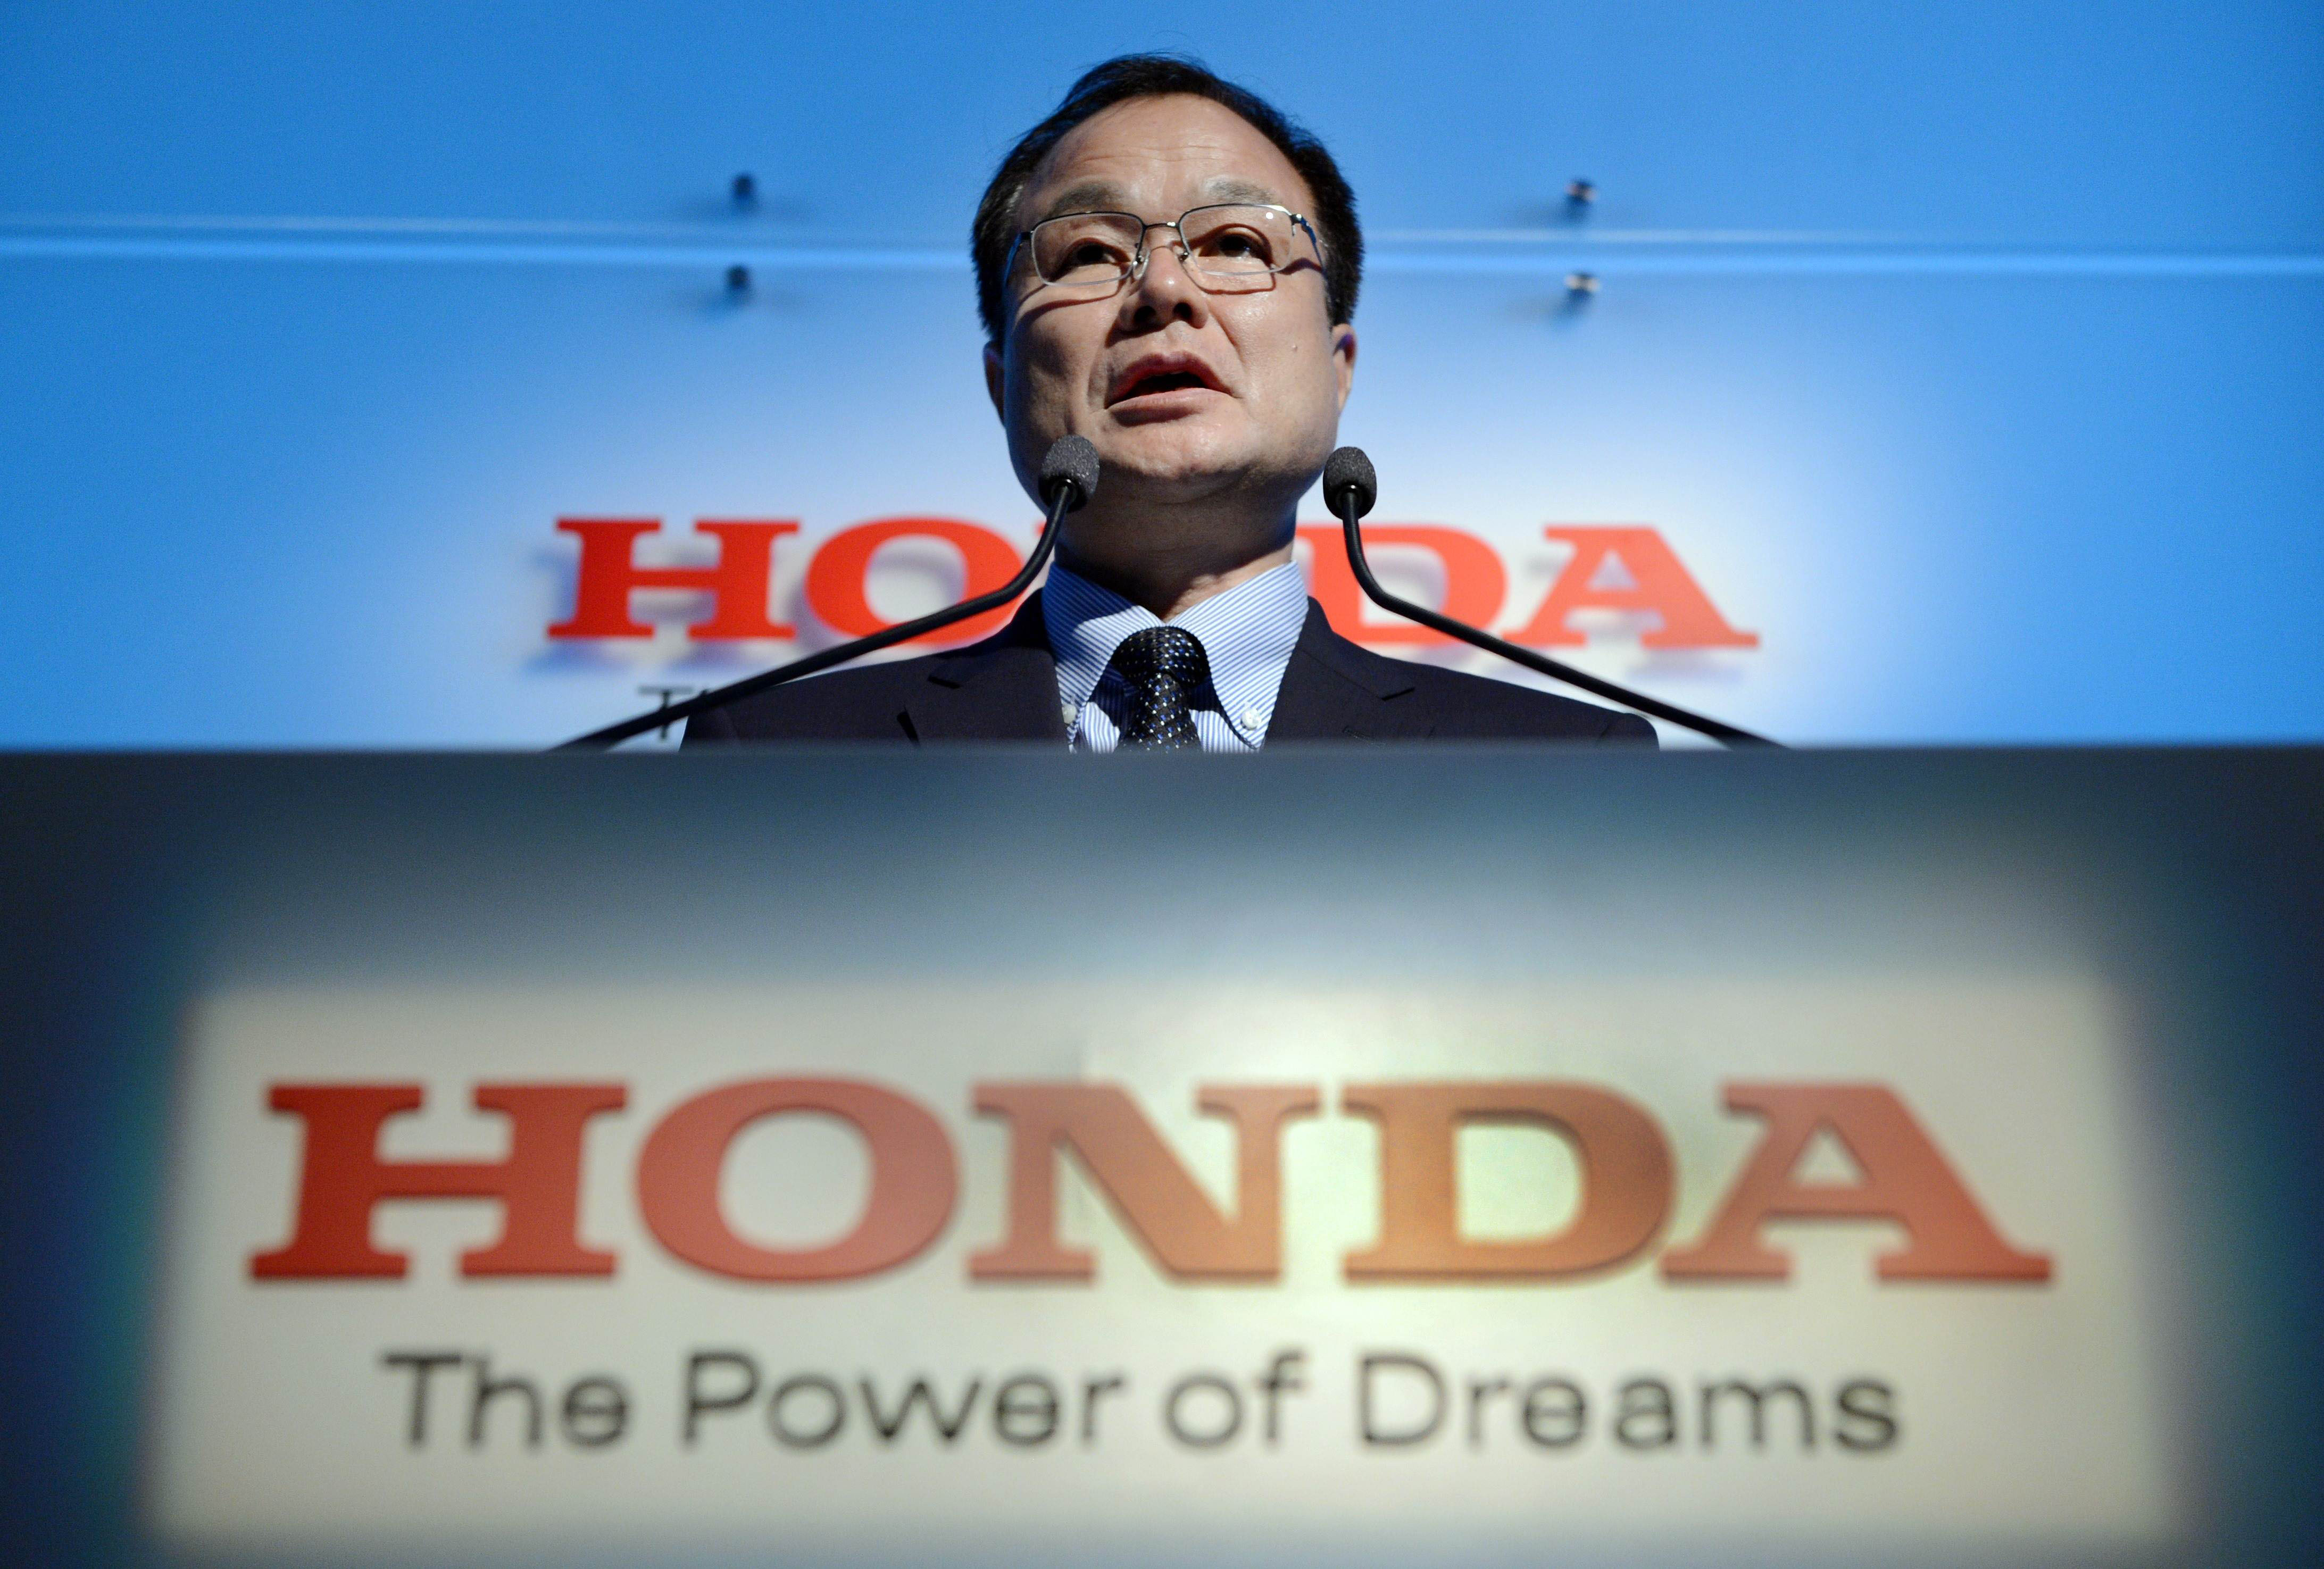 Honda aims to double sales by 2017